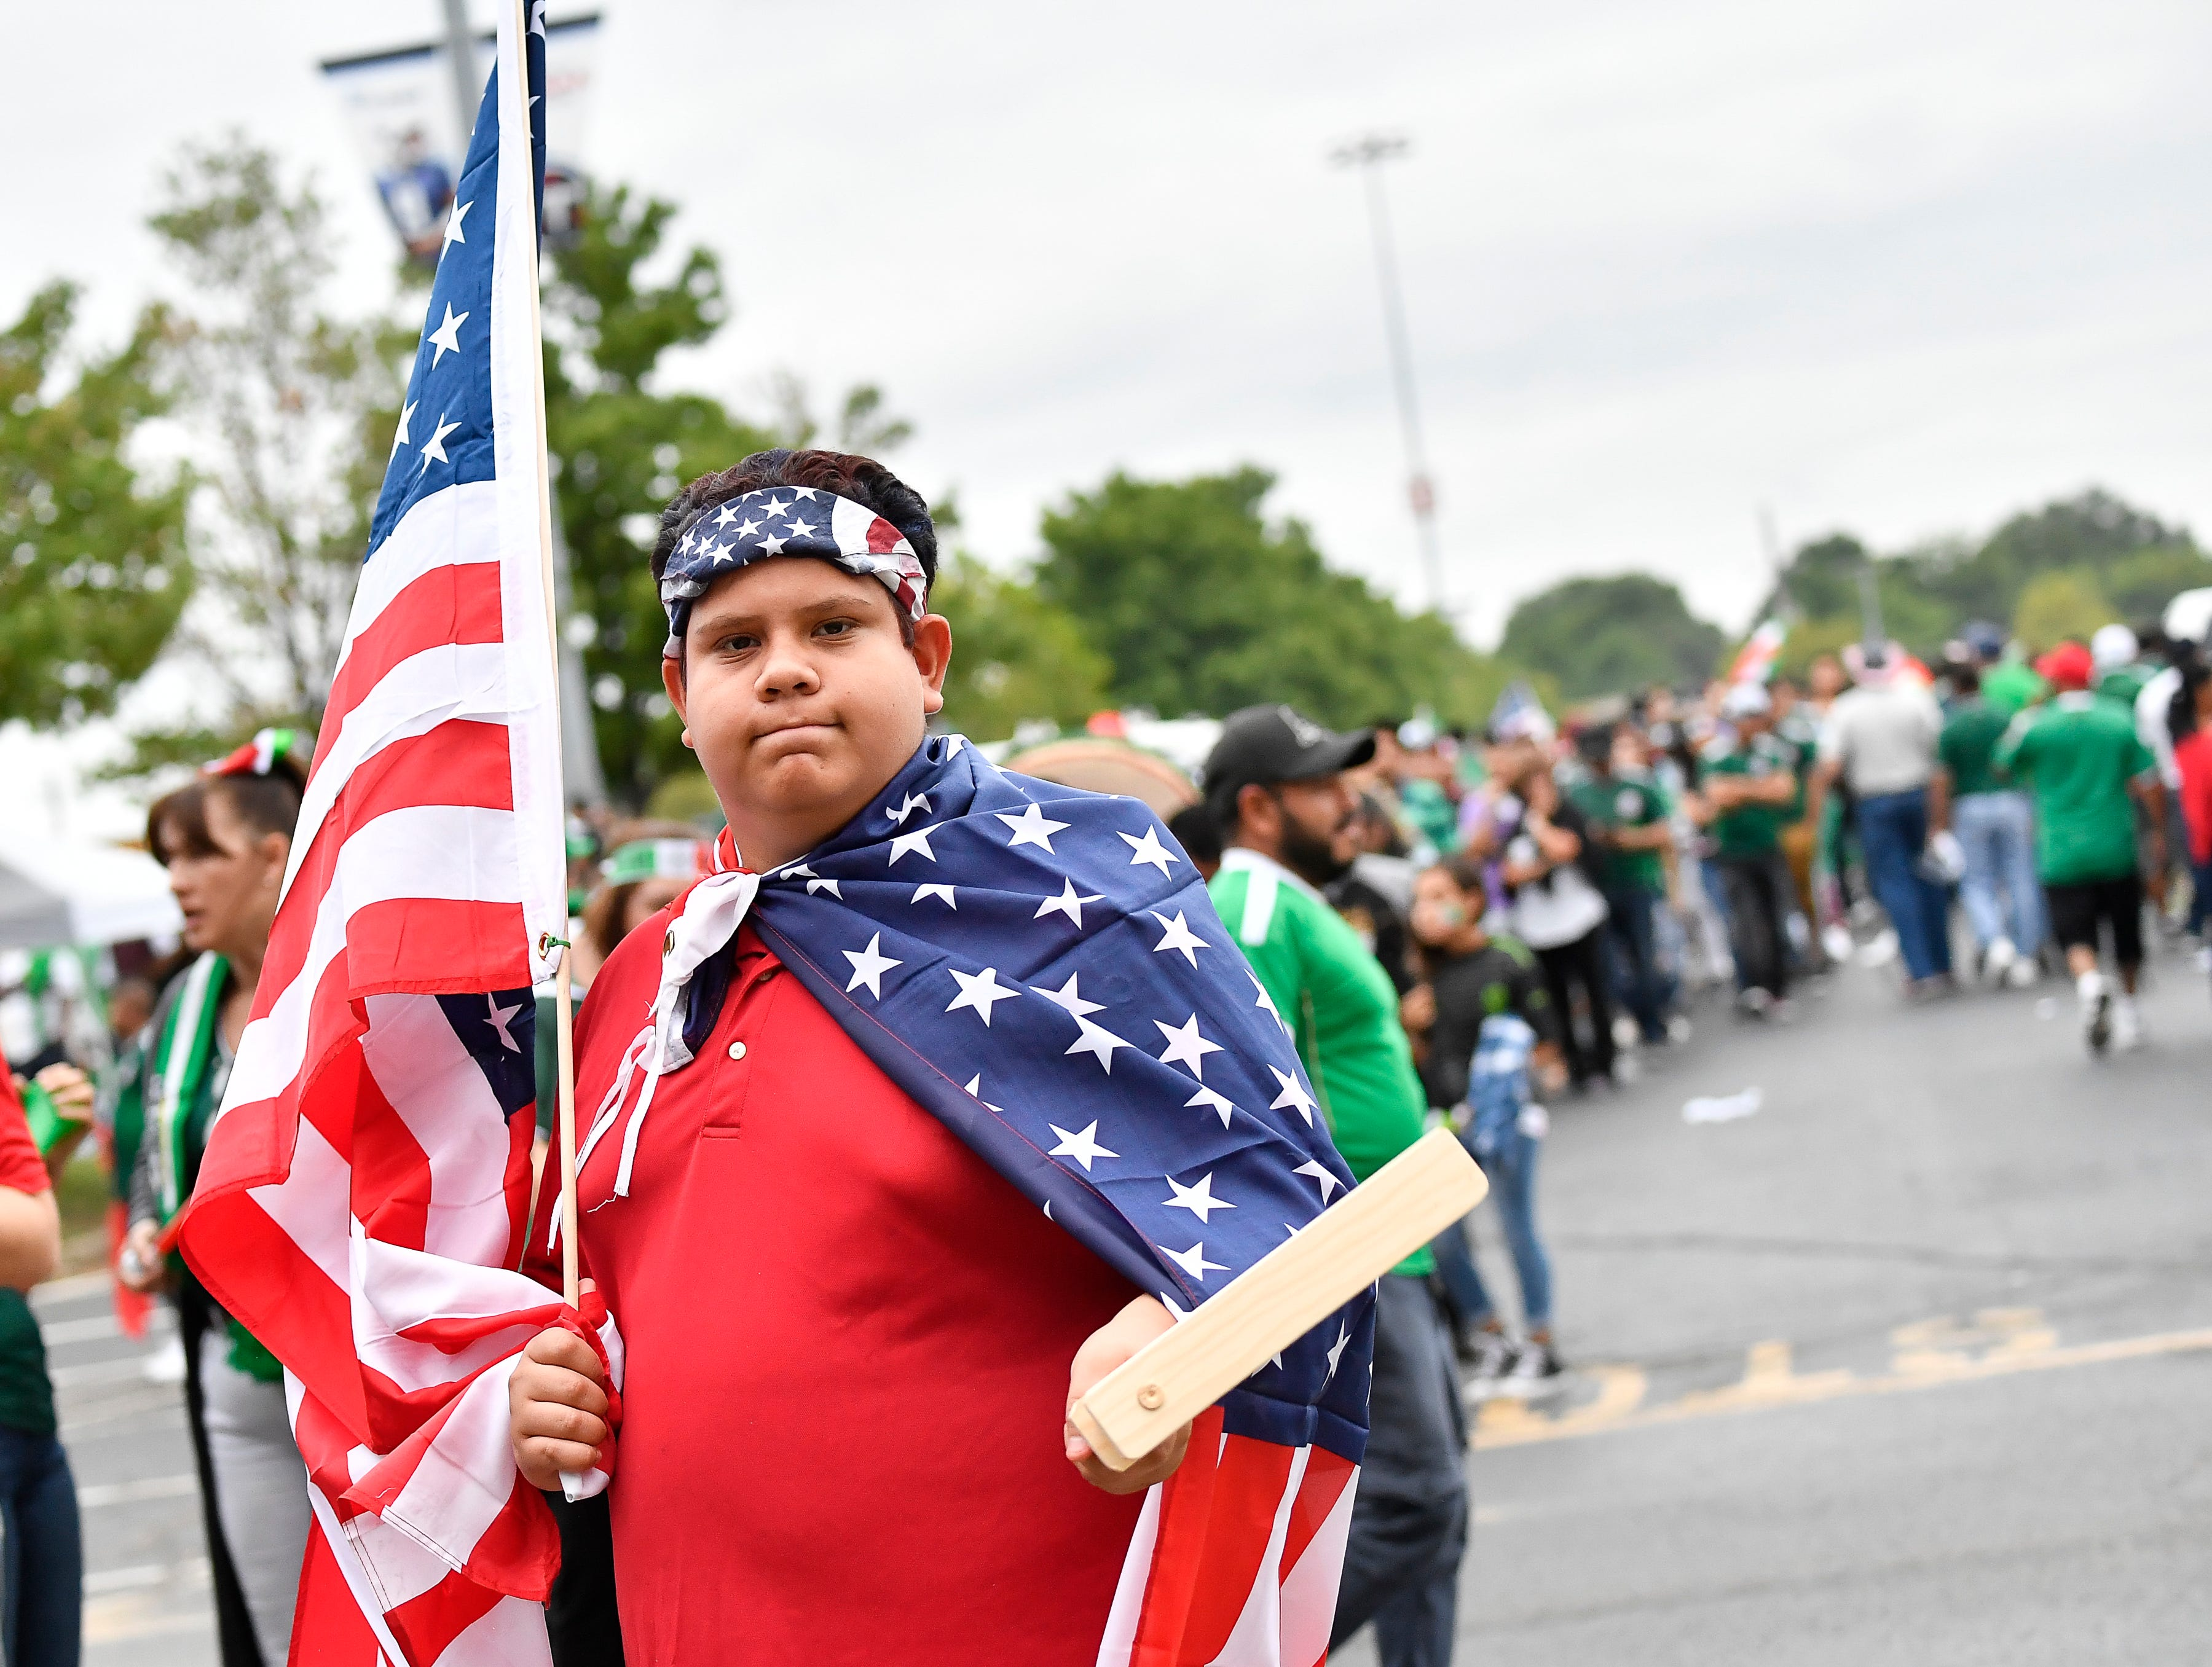 USA soccer fan Caleb Diaz wears the American colors before the USA vs. Mexico soccer match at Nissan Stadium Tuesday, Sept. 11, 2018, in Nashville, Tenn.